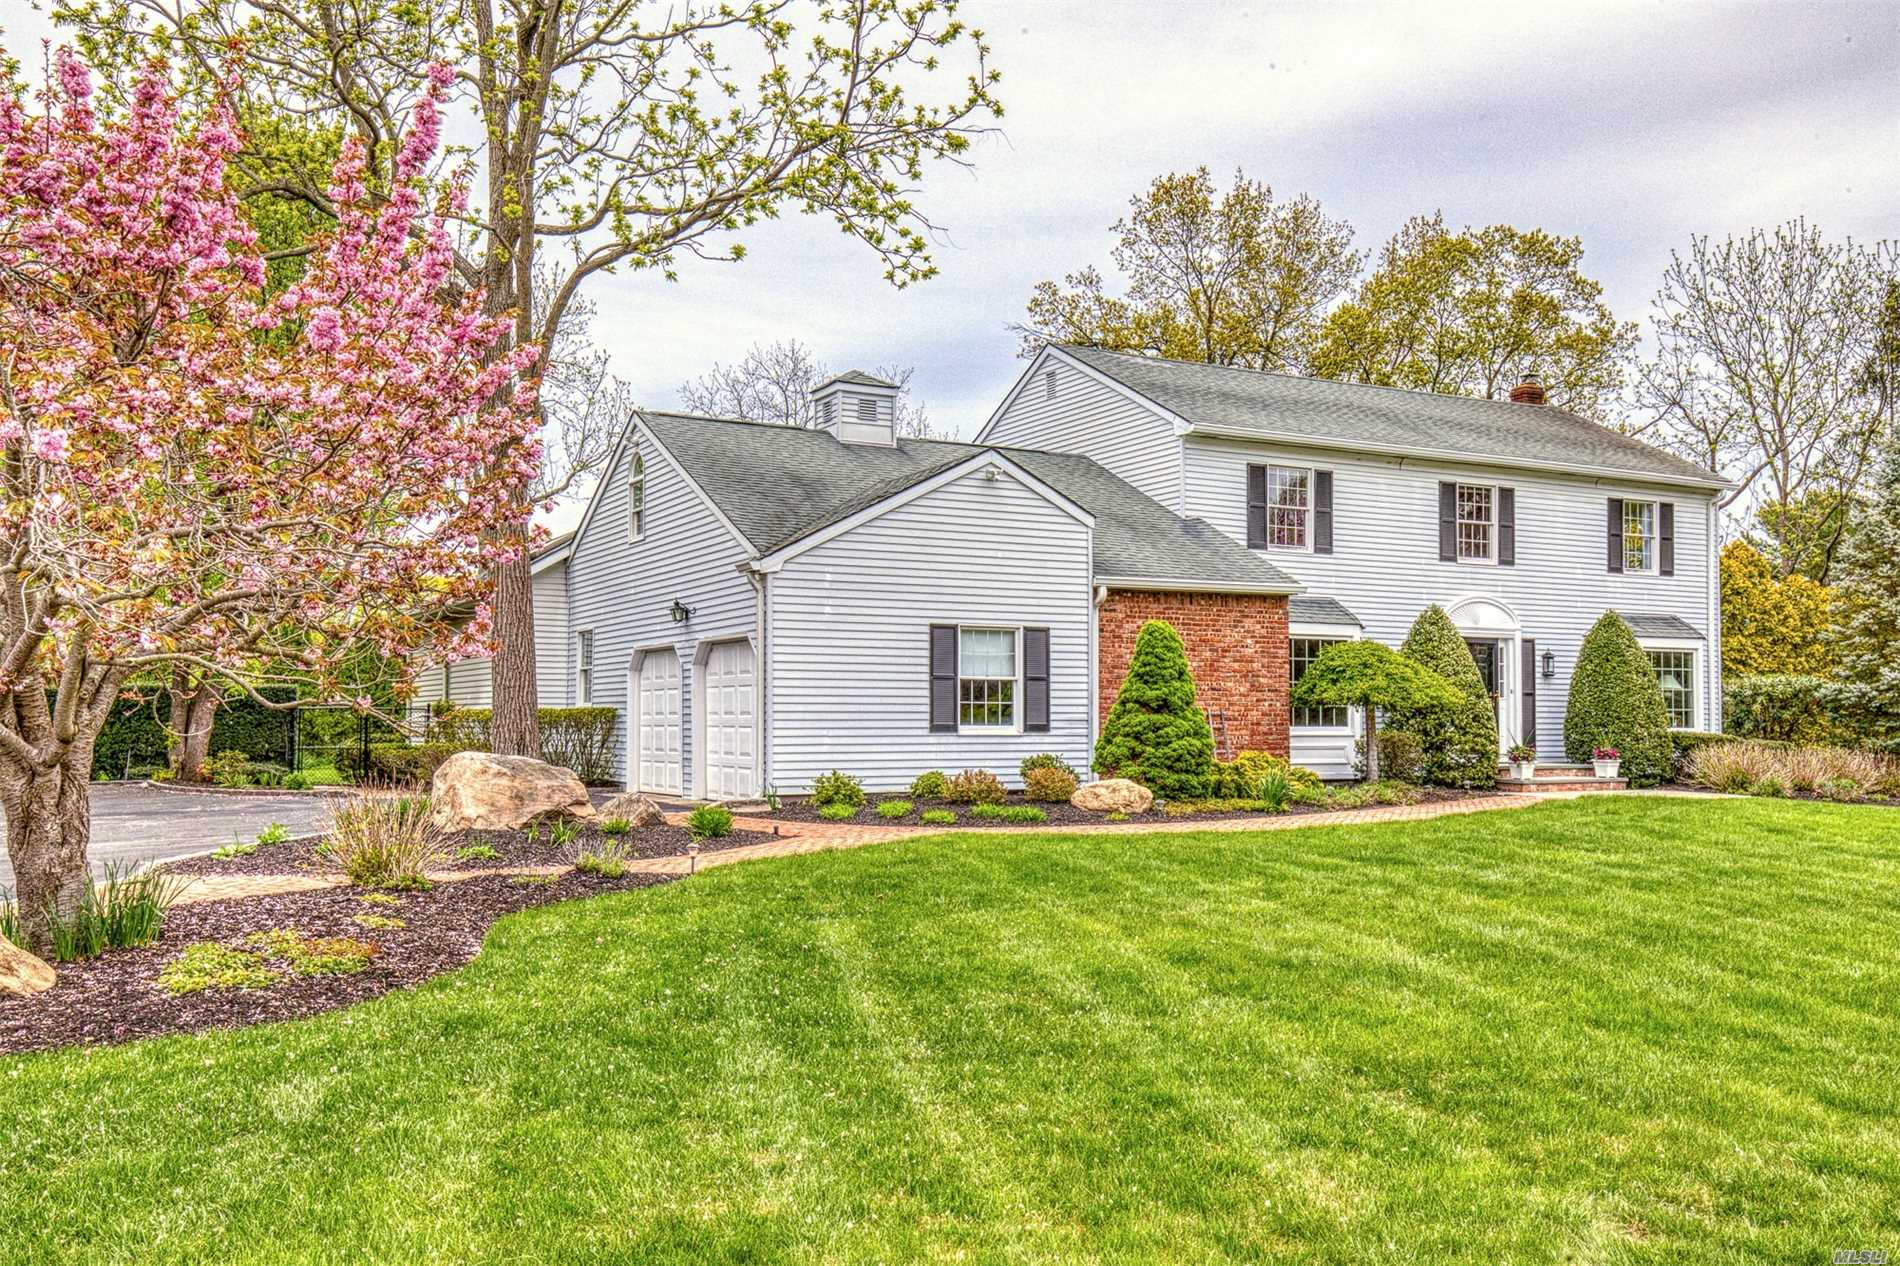 You will love living so close to the green in this beautiful & spacious Colonial in the sought-after Harbor Hills community of Port Jefferson. Enjoy beach walks, kyak, golf, tennis, fishing, dining - all within walking distance! After golfing the delightful 40x20 ig heated pool awaits you. Great for entertaining or exercising, you'll love this home's gentle elegance, with sprawling rooms & heartwarming decor. Renowned PJ Schools, Close to Hospitals & University. Move in and enjoy Life!